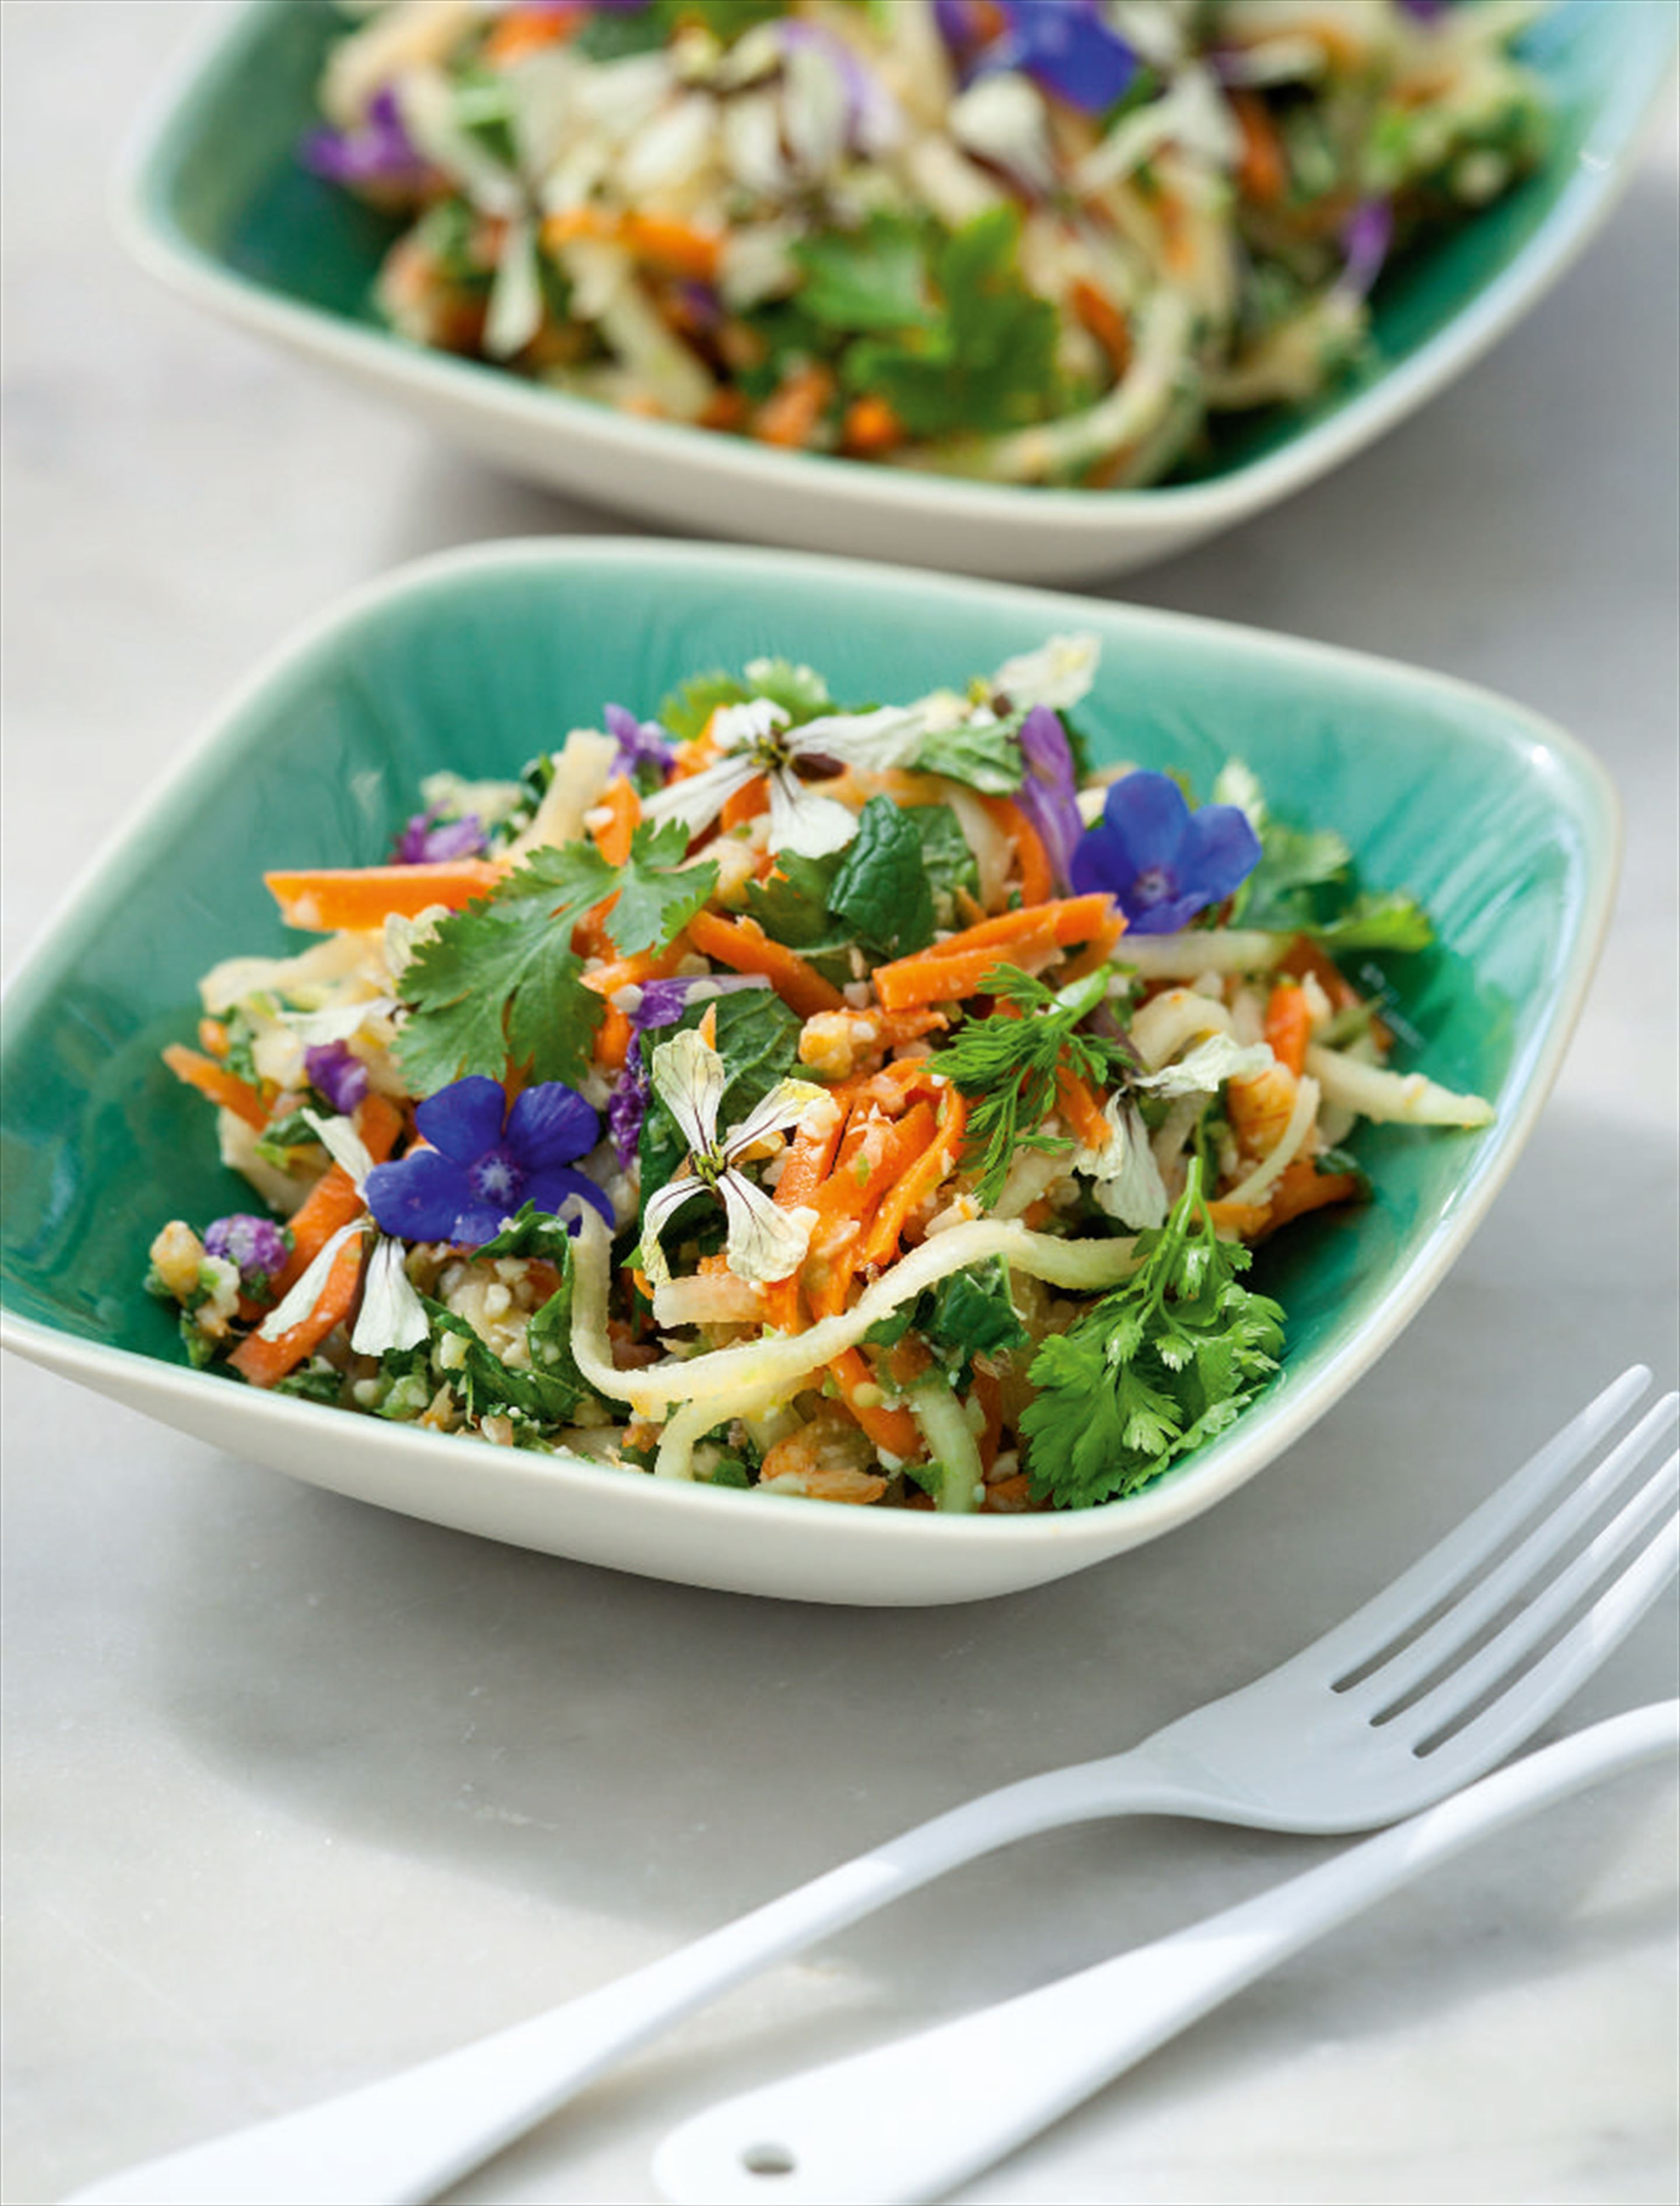 Green pawpaw, carrot and cashew salad